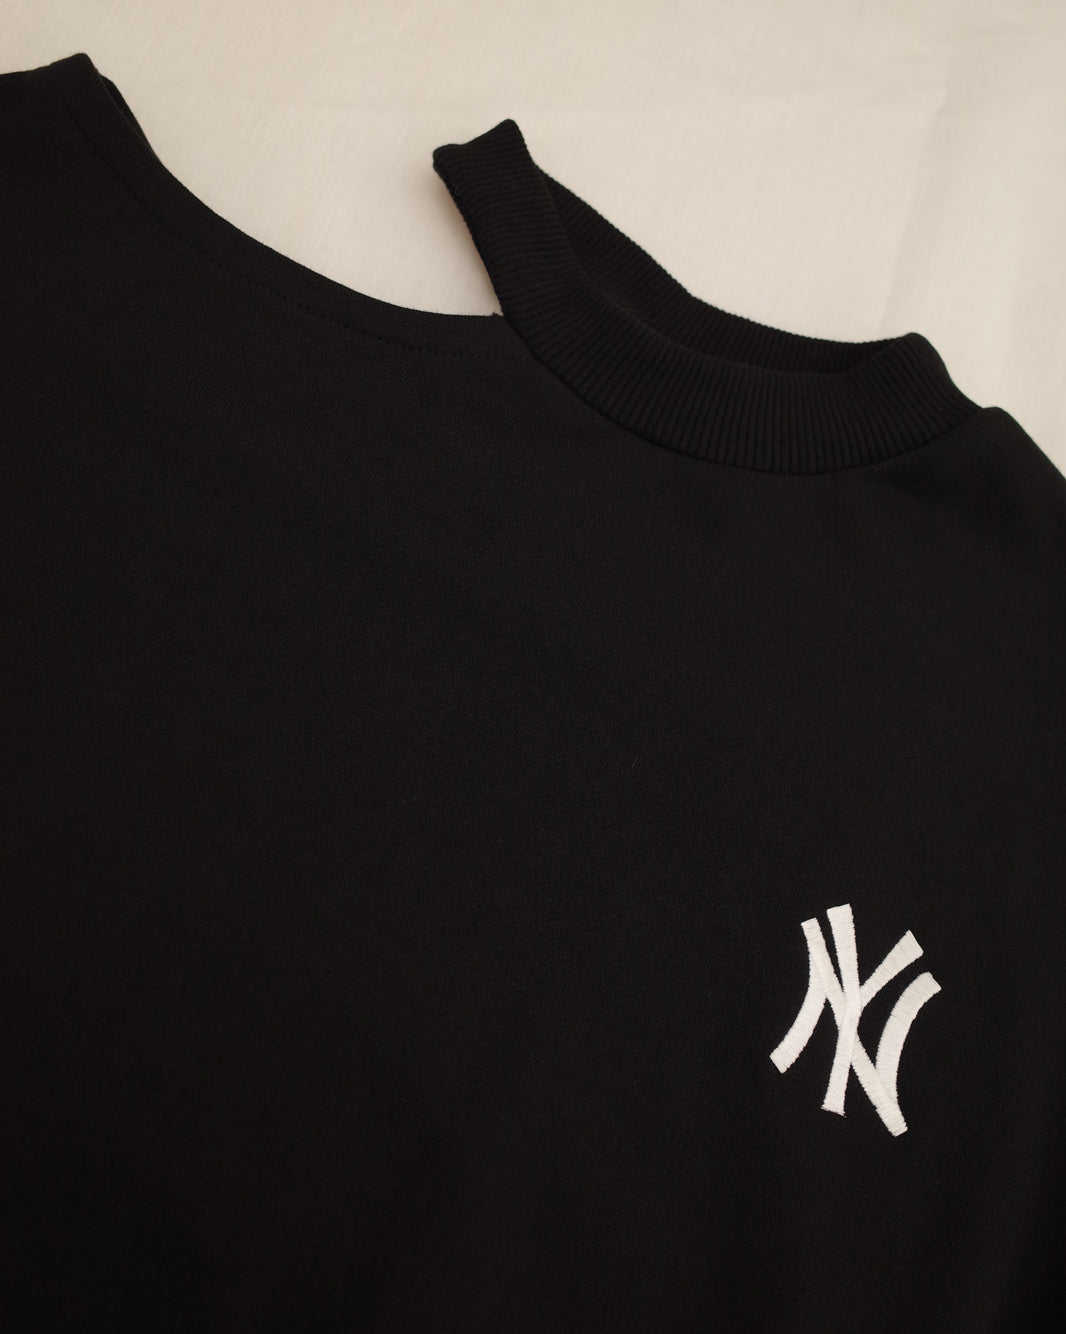 NY cut out sweat top